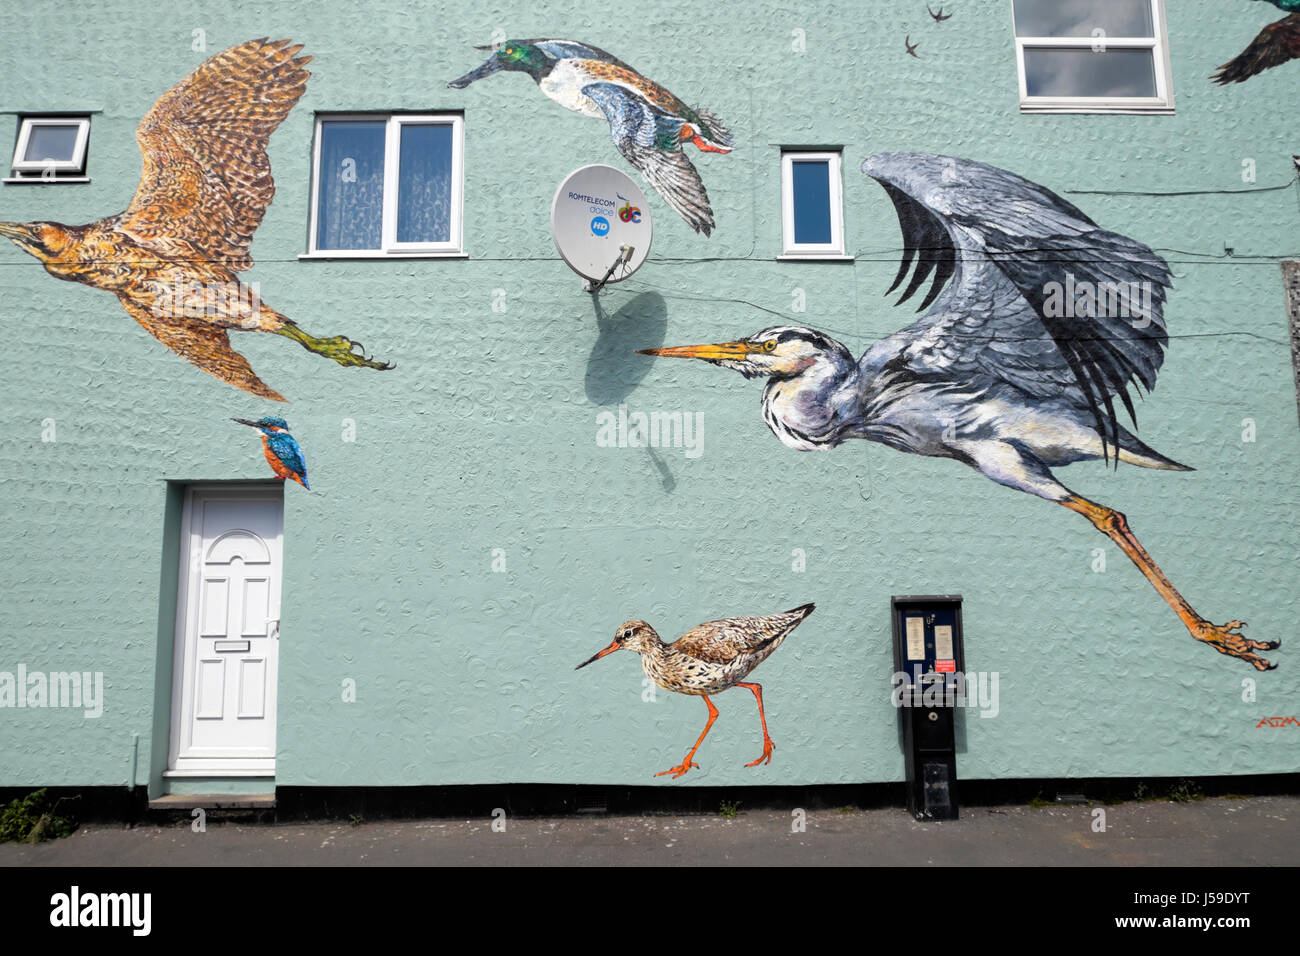 Bird painting of flying wetlands birds on the wall of a building on Coppermill Lane in Walthamstow, East London - Stock Image